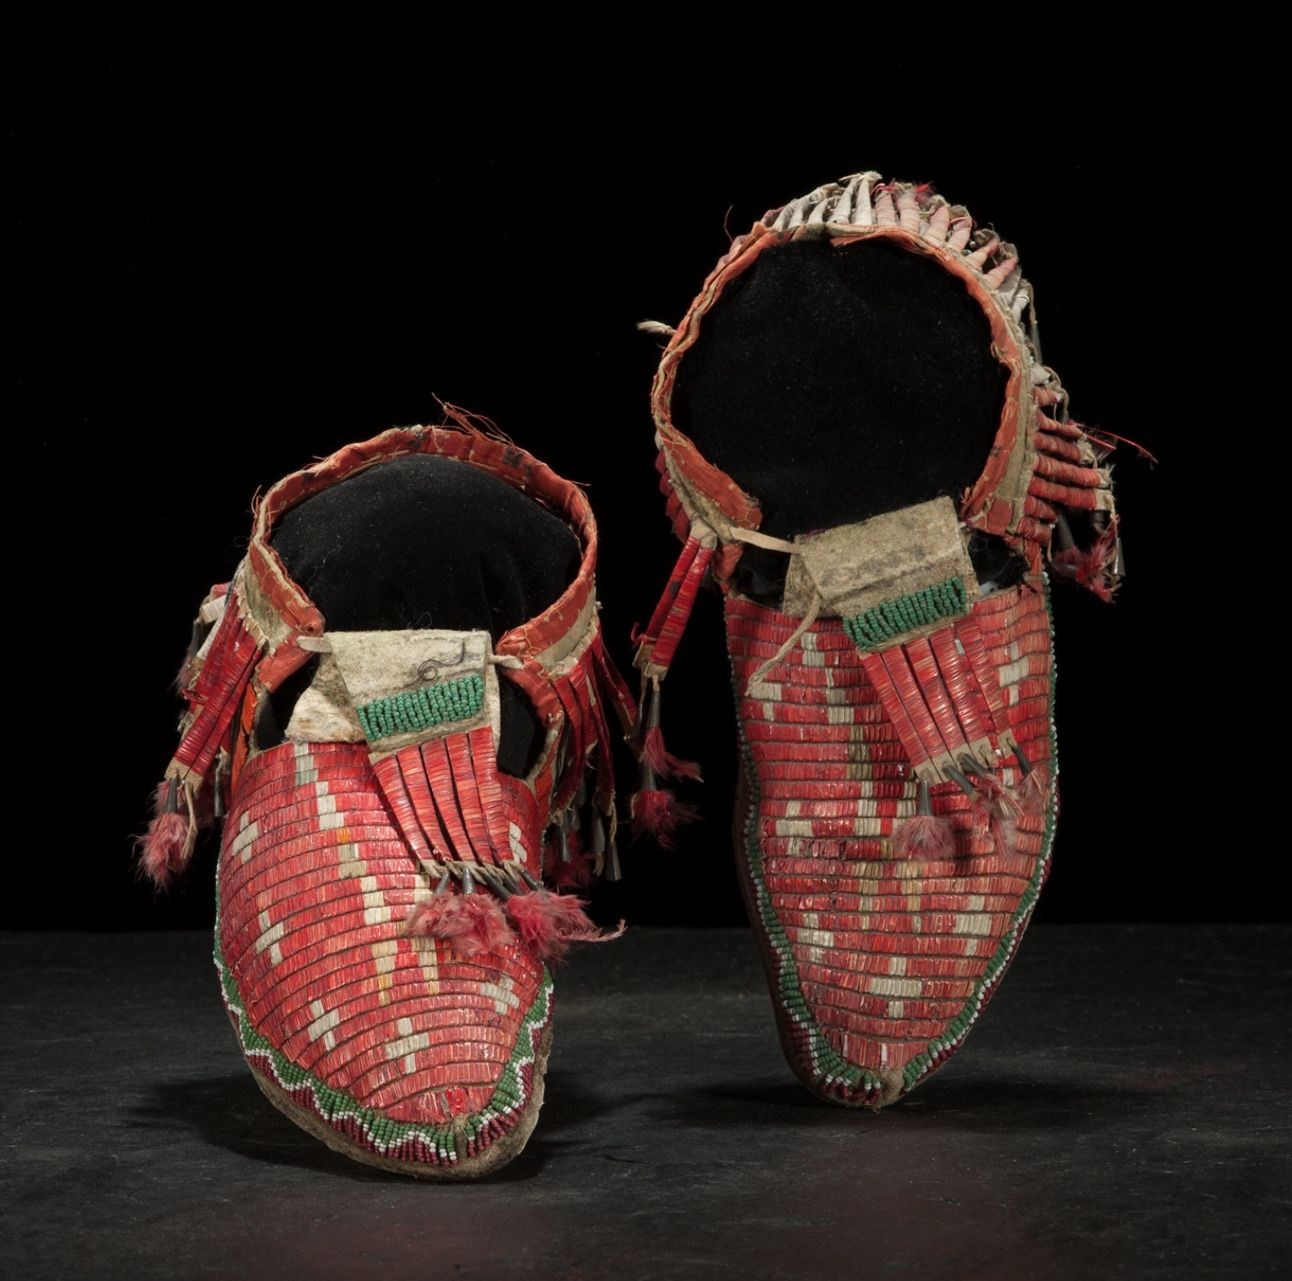 Sioux Beaded And Quilled Buffalo Hide Moccasins Da1 Fourth Quarter 19th Century Cowan S American Indian And Western Western Art American Indians Moccasins